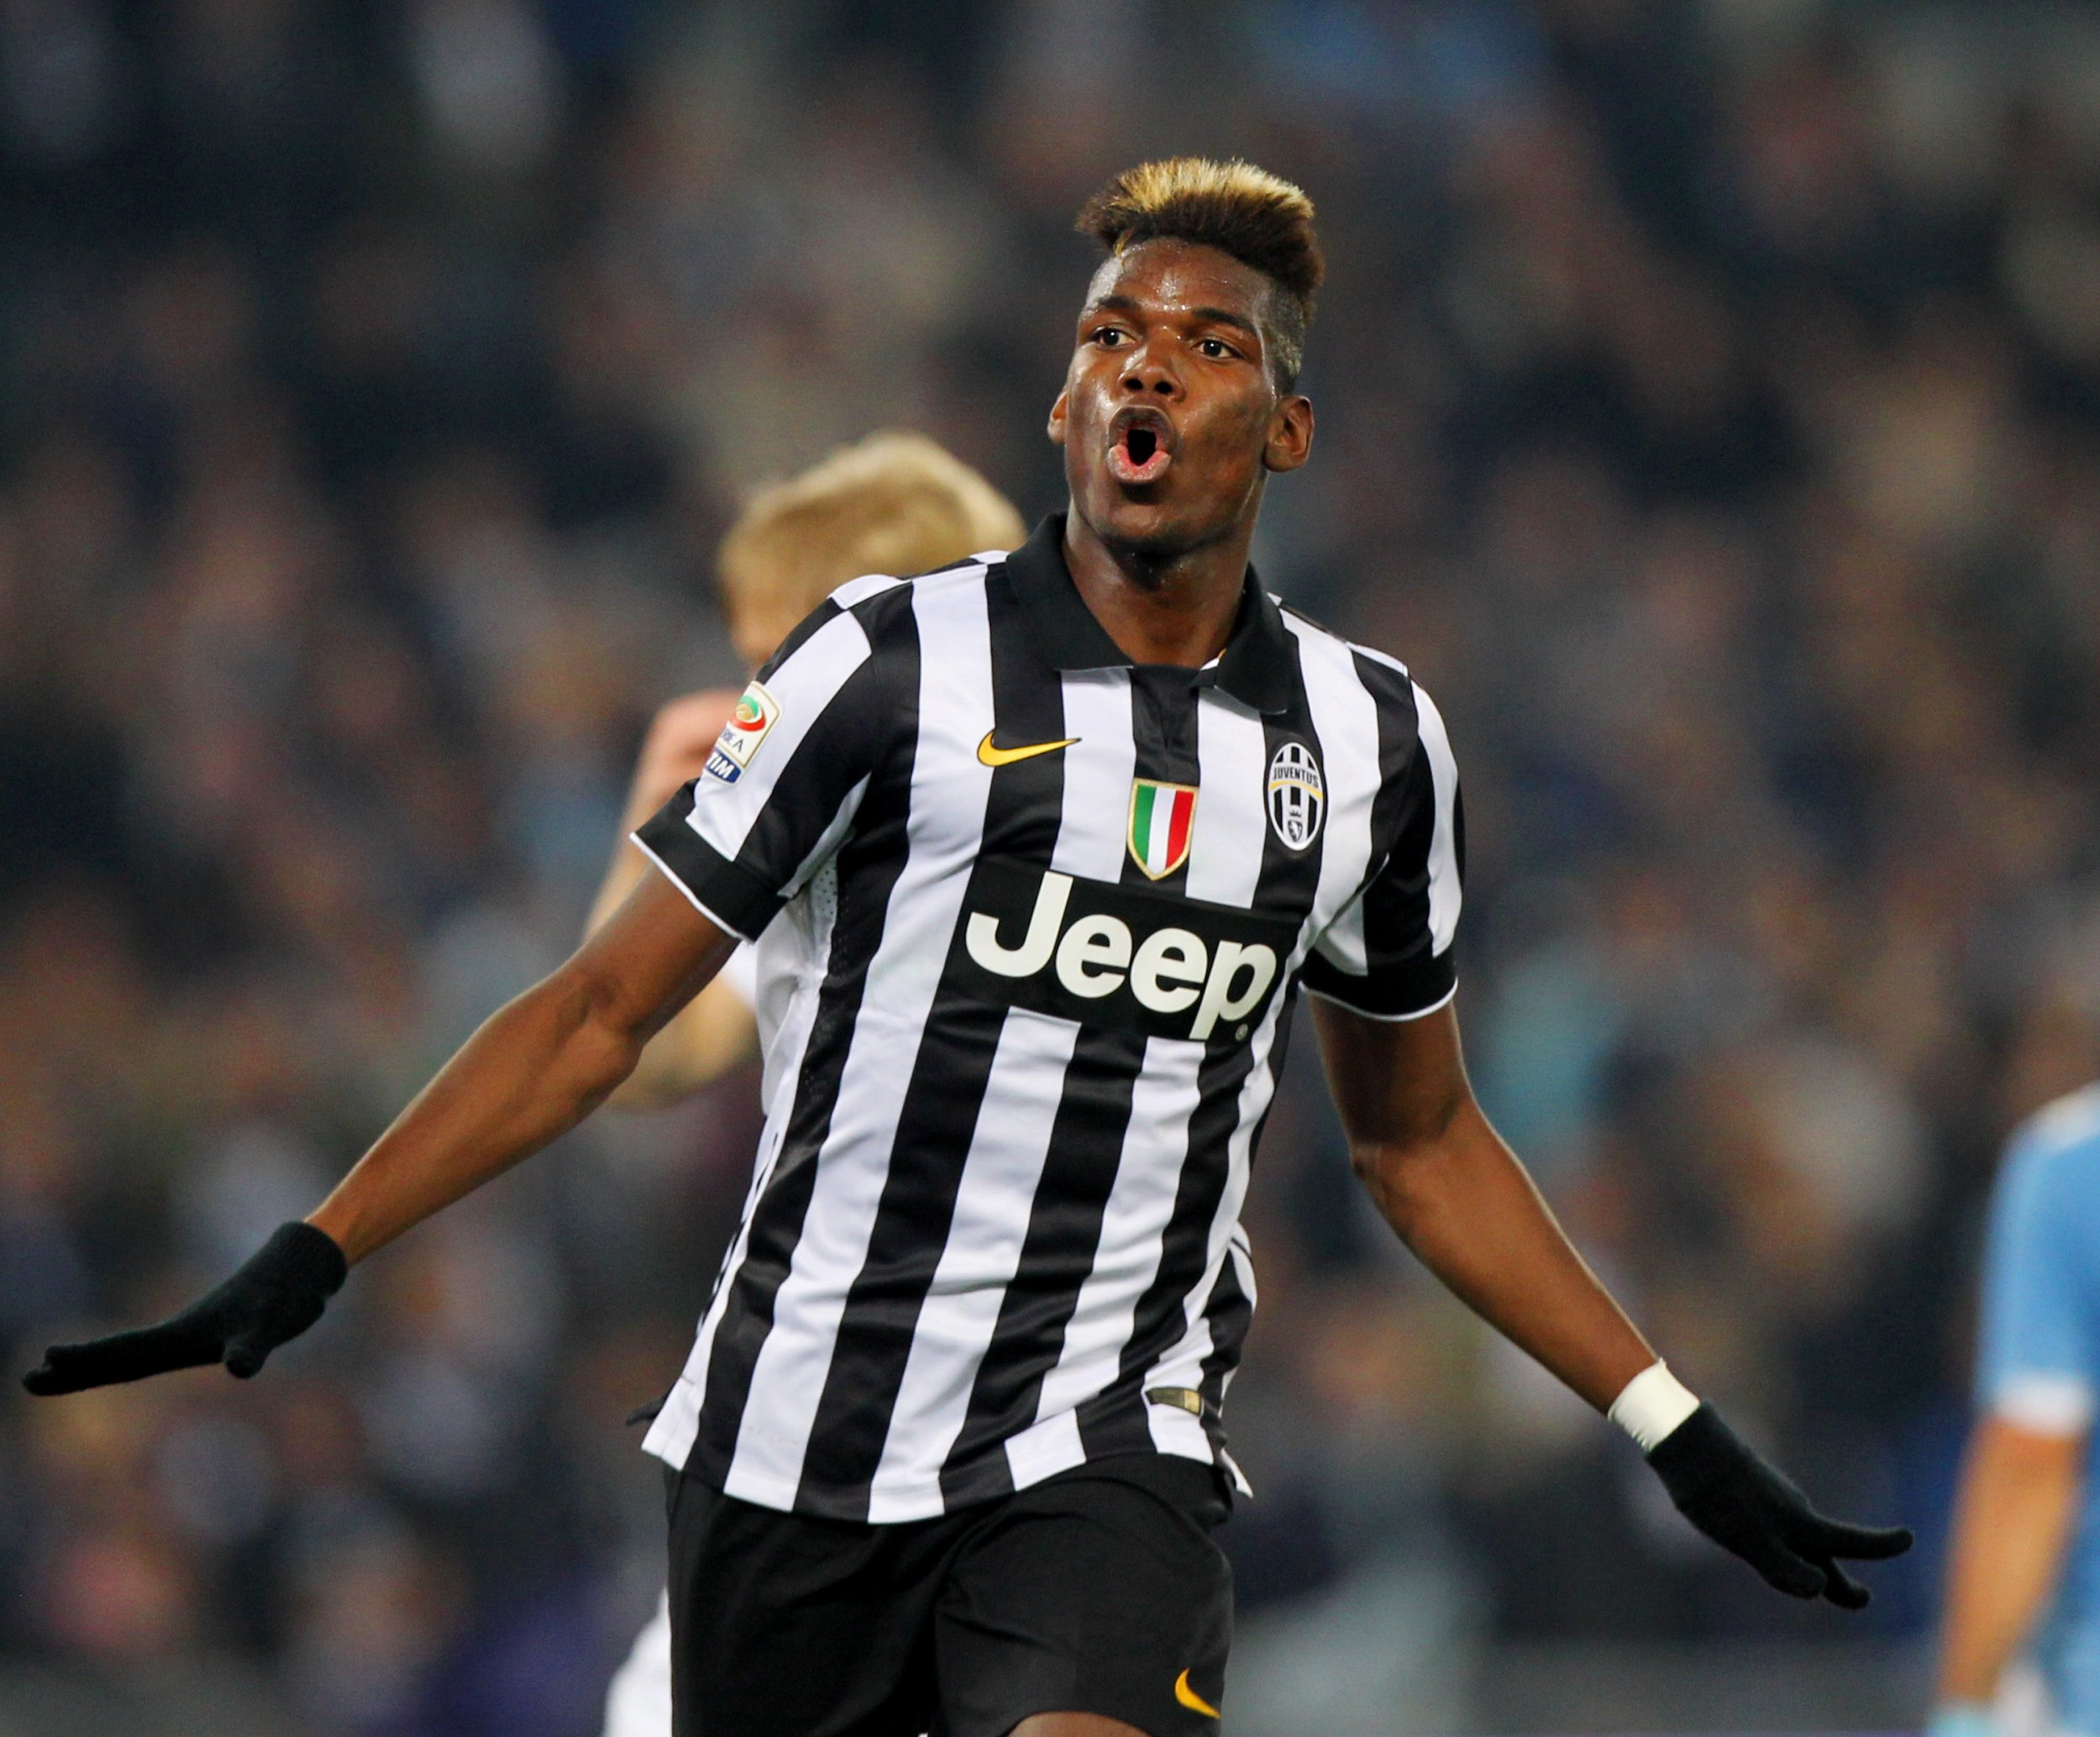 Paul Pogba: Real Madrid Transfer News: Would Paul Pogba Fit In At The